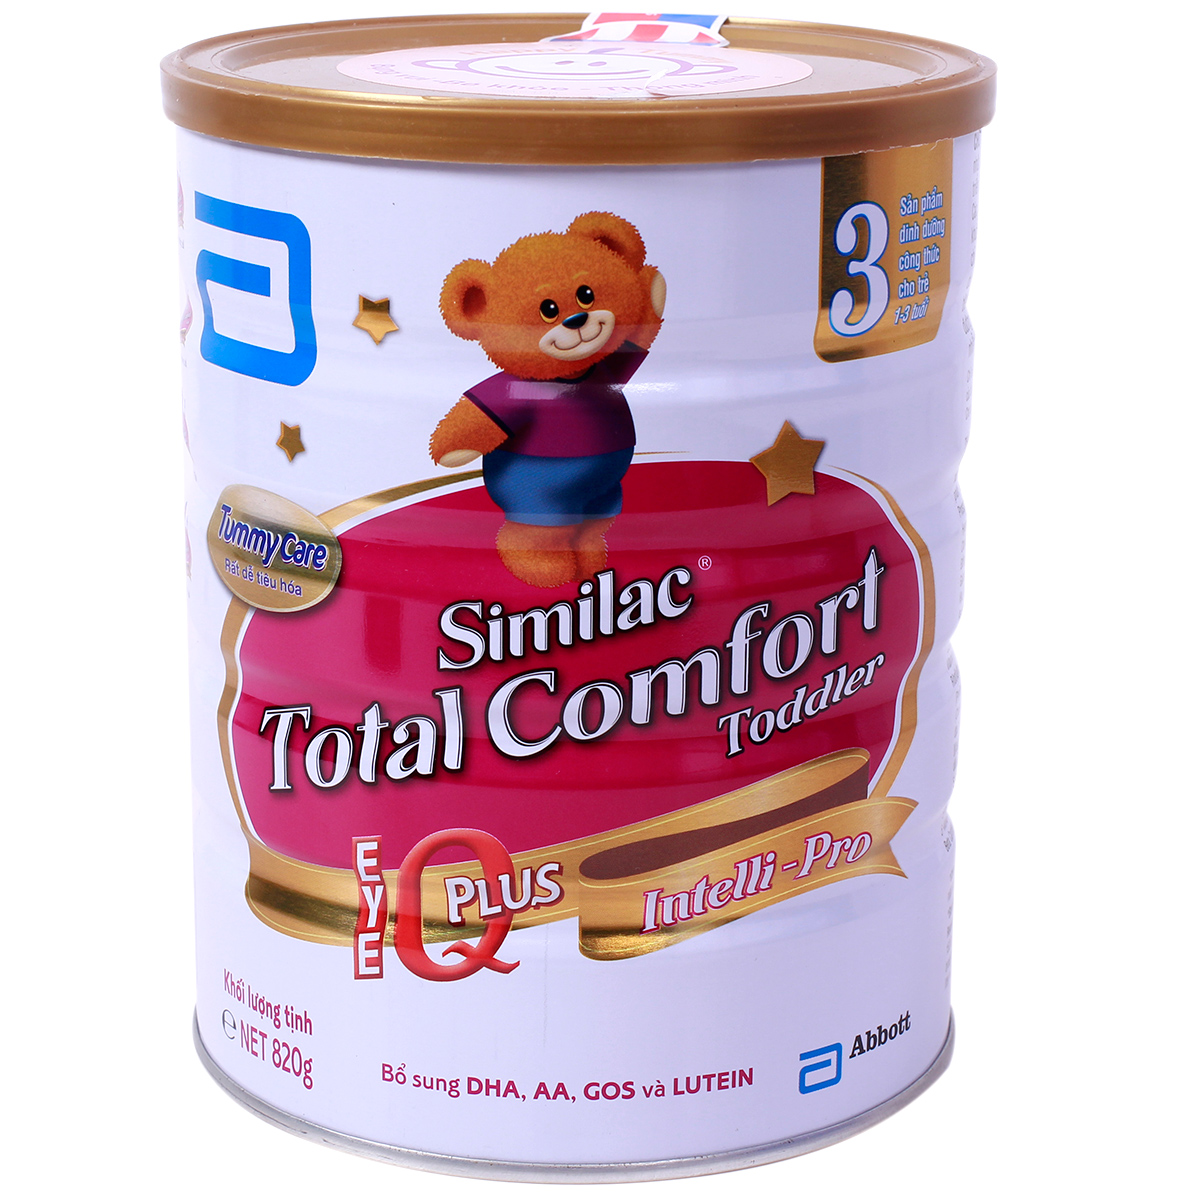 Sua Similac Gain Total Comfort so 3 - 820g